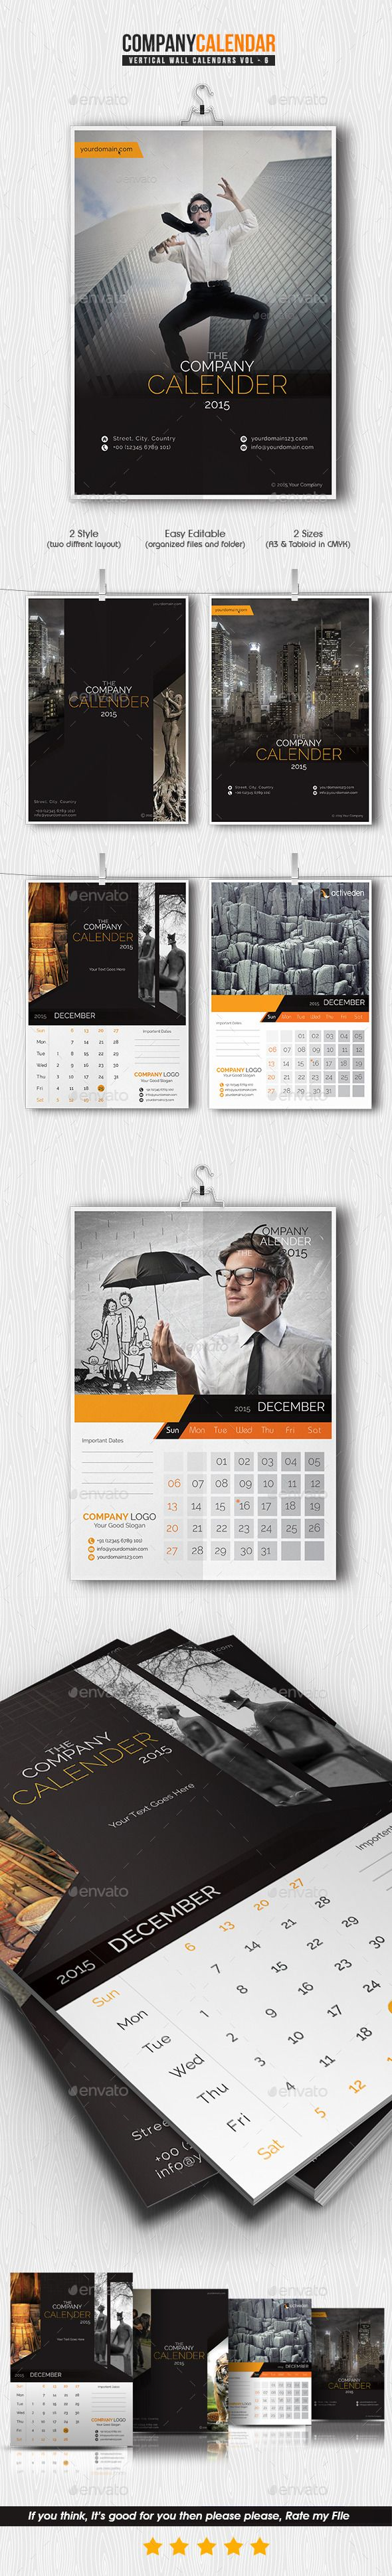 Company Calendar 2015 Template | Buy and Download: http://graphicriver.net/item/company-calendar-2015/9798648?ref=ksioks